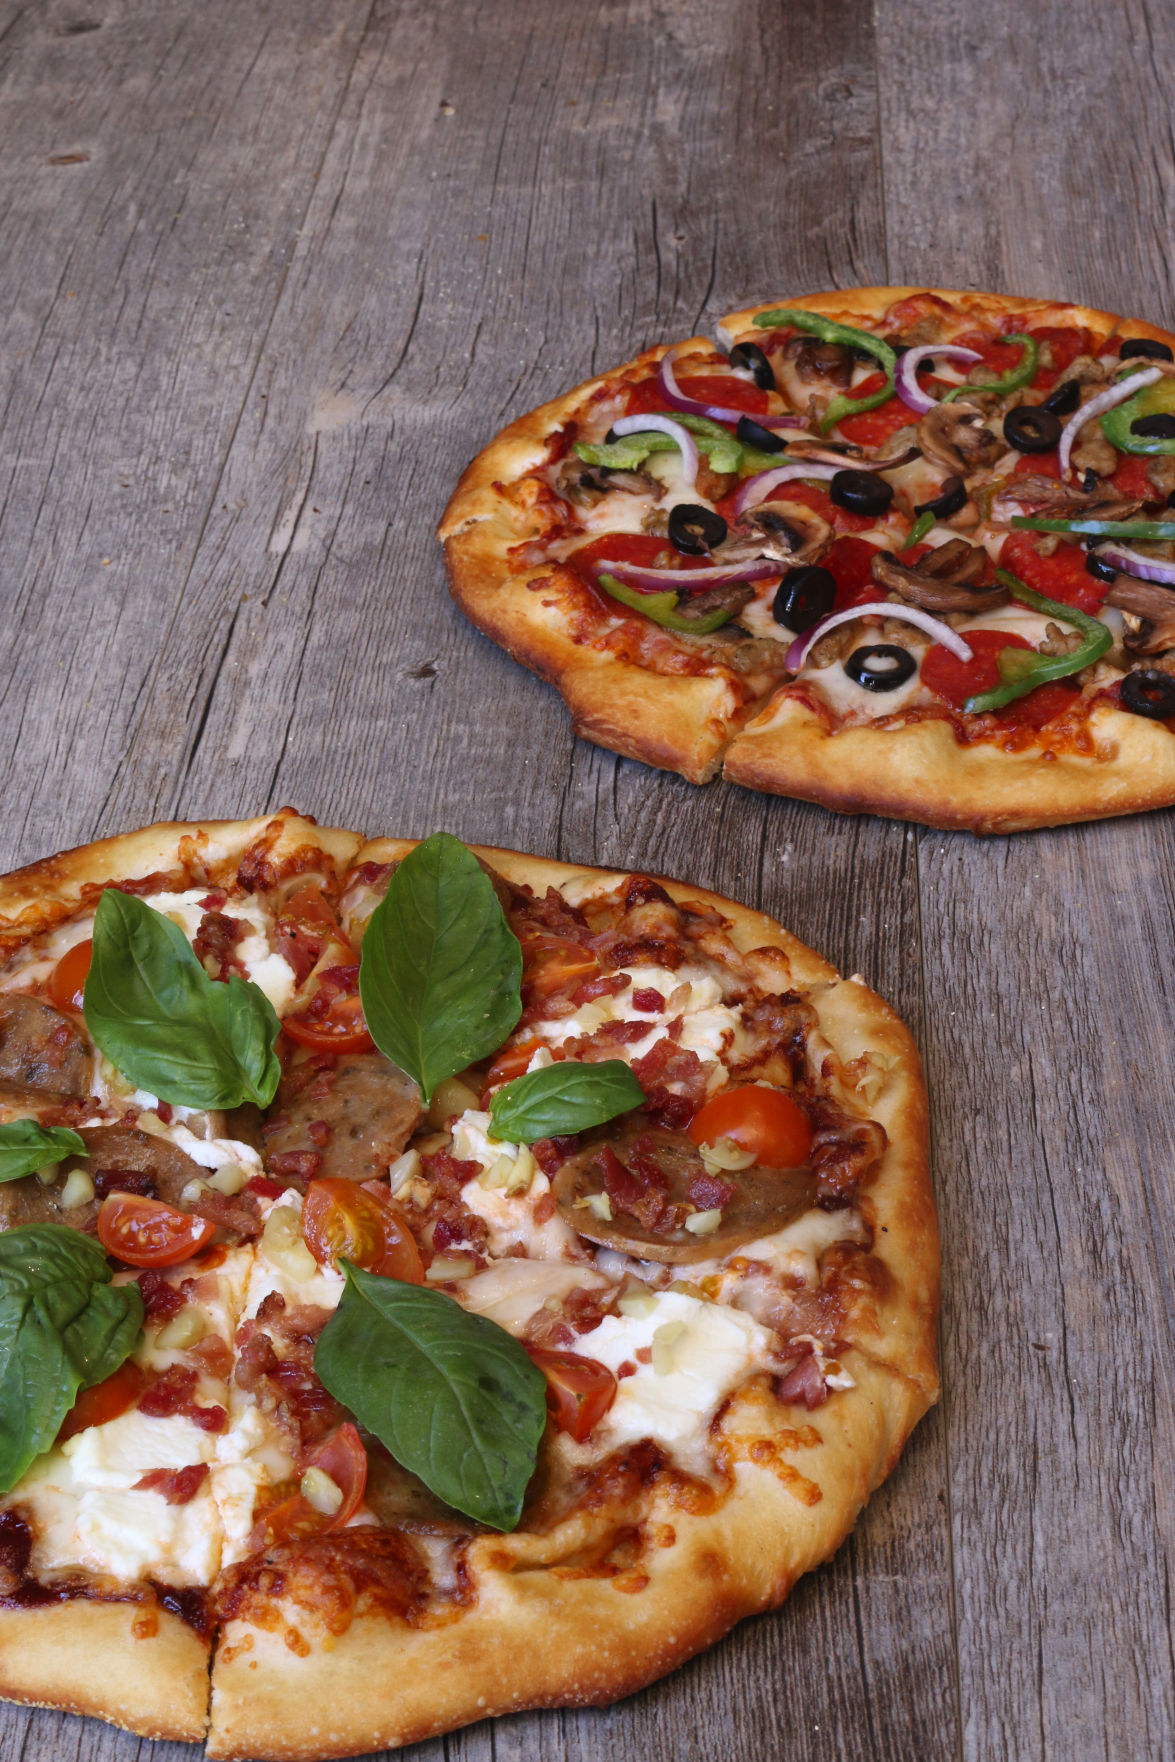 THE DISH: Any way you slice it, local fast casual pizza scene is hot ...